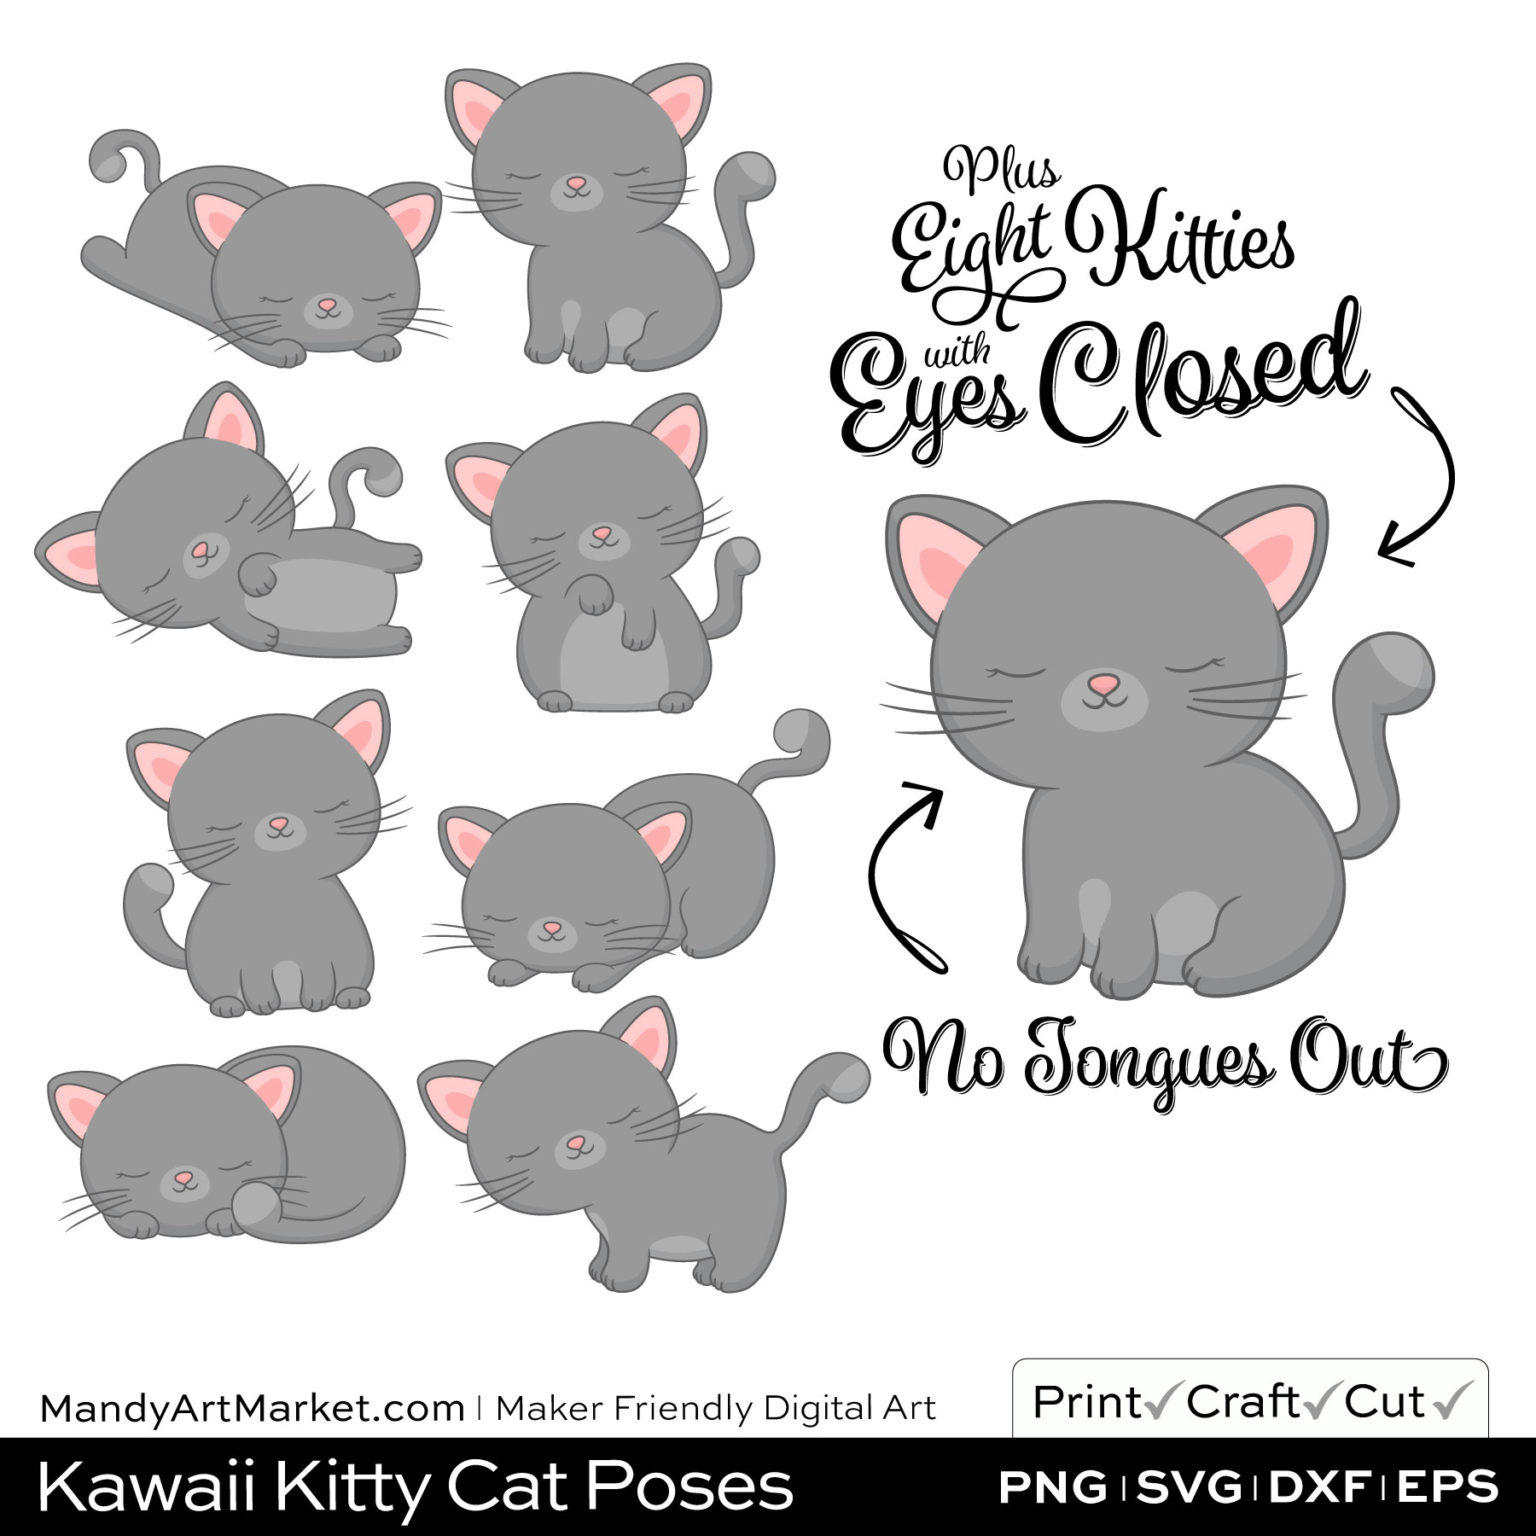 Dolphin Gray Kawaii Kitty Cat Poses Clipart PNGs Included in Download